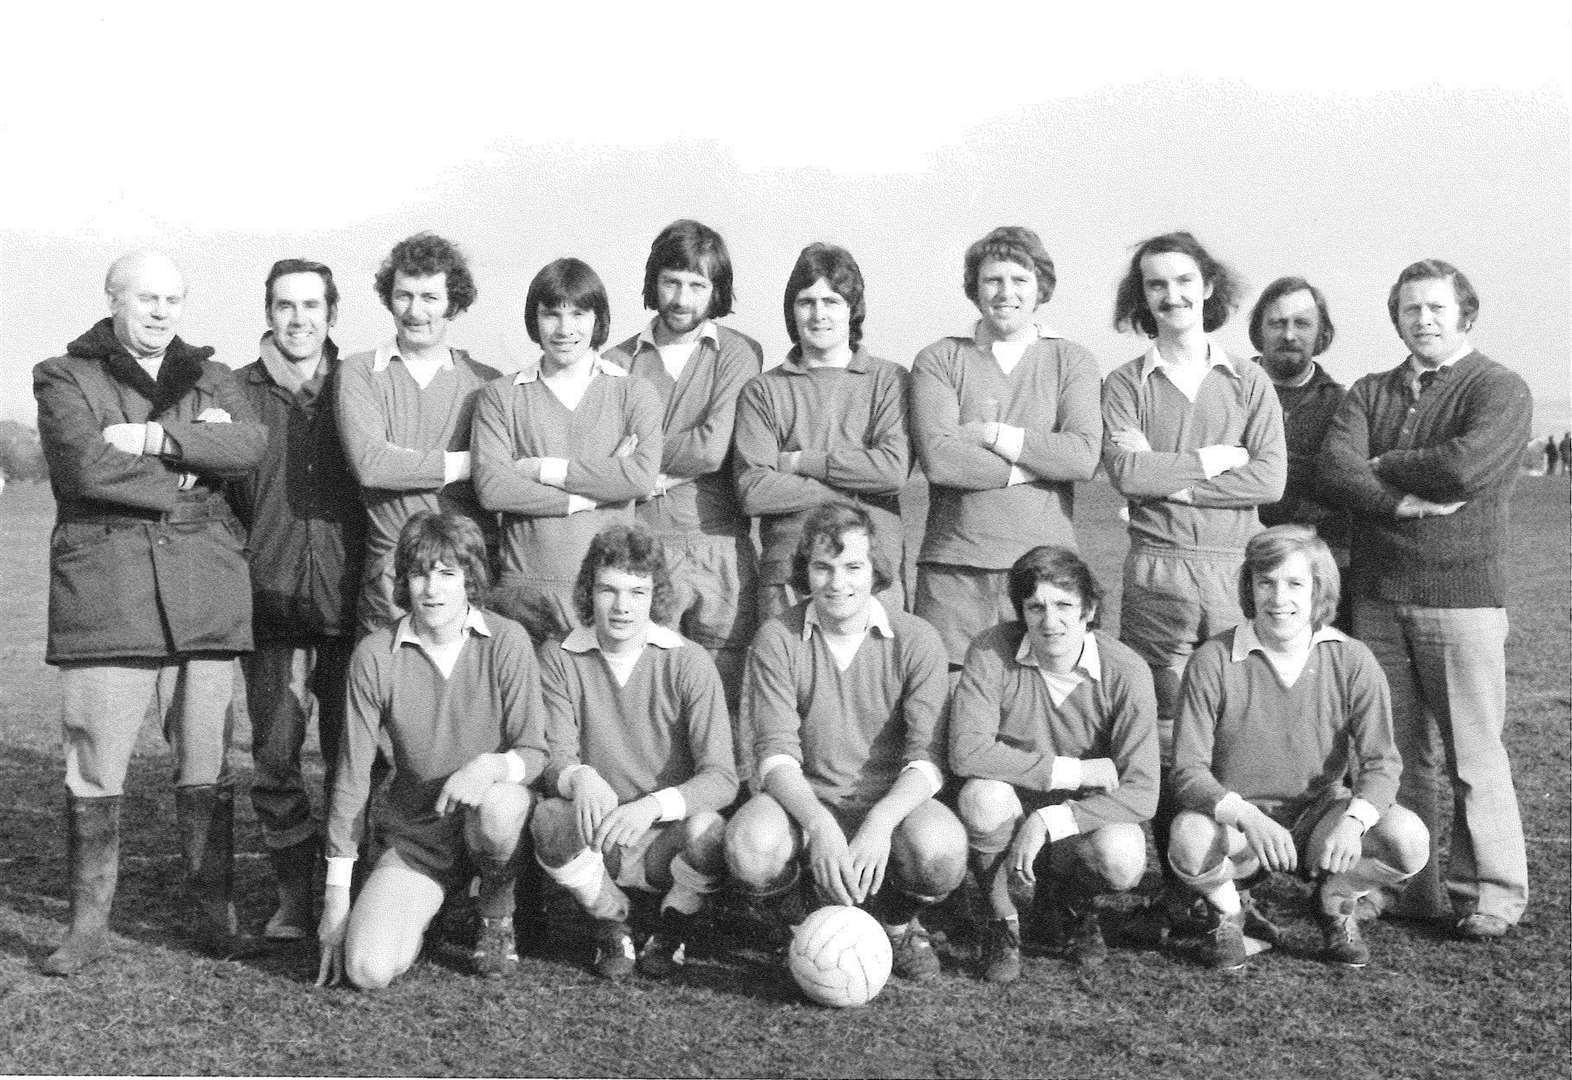 St Anne's FC finished third in the league in 1976